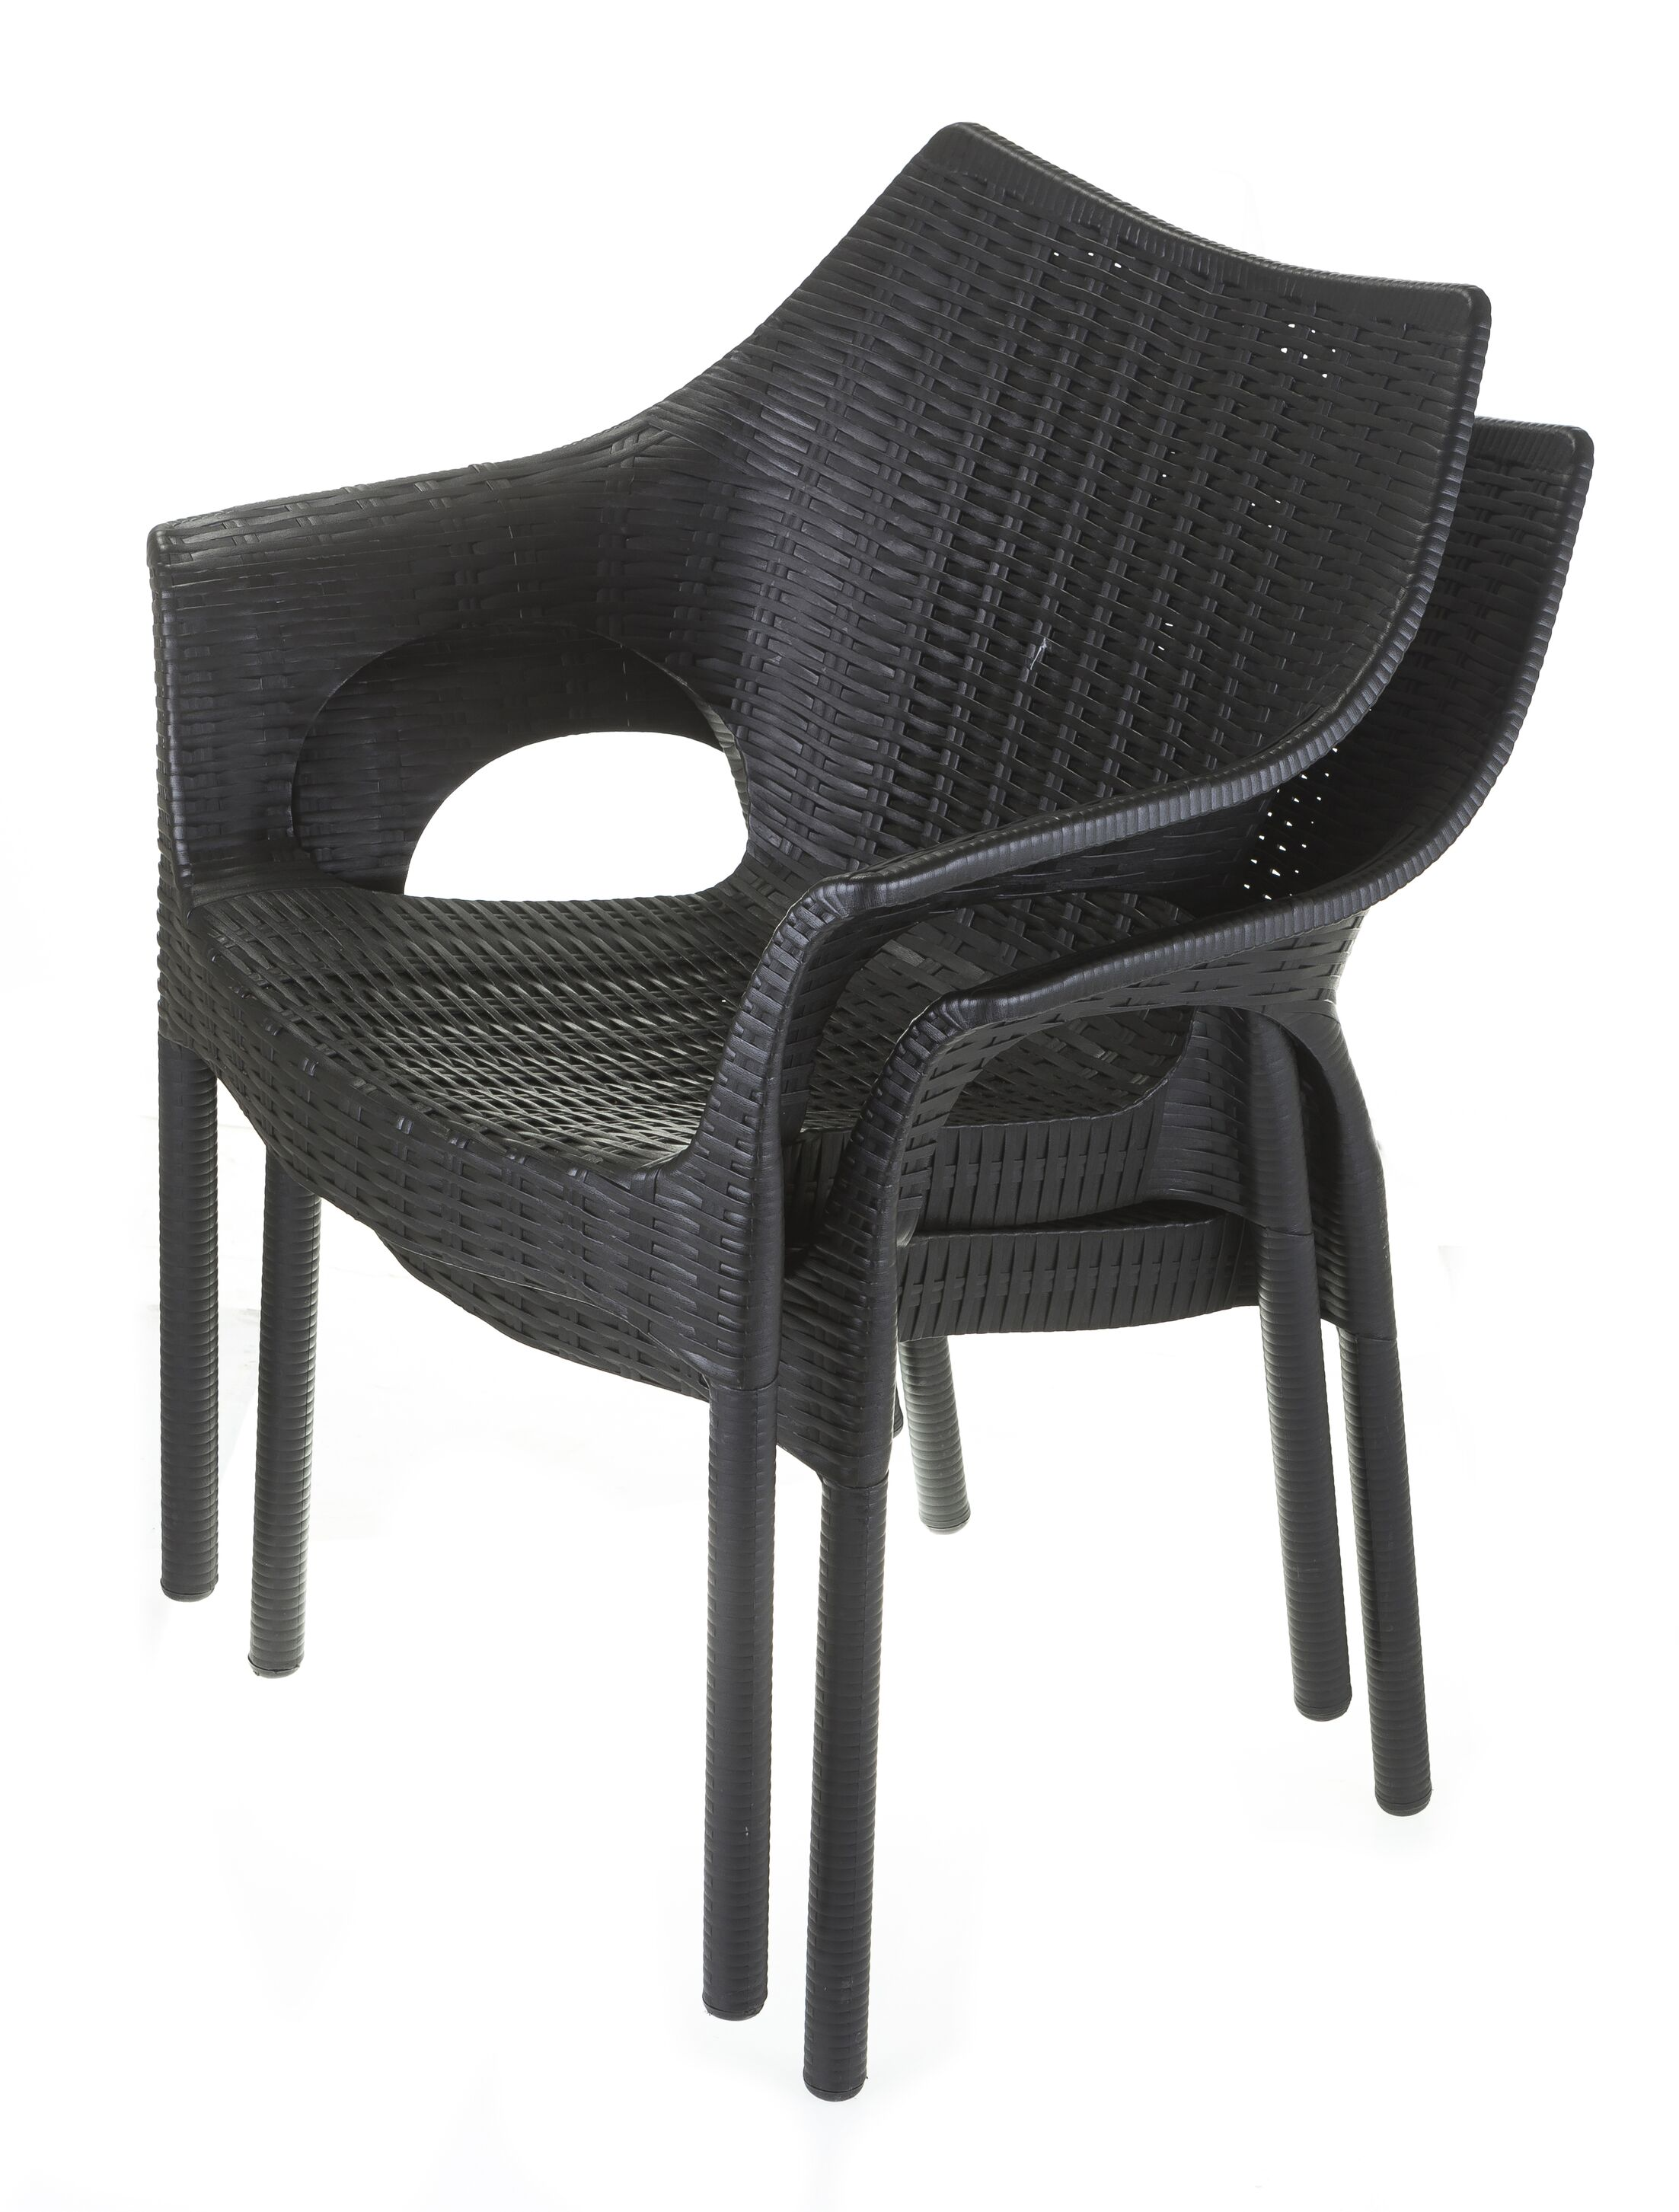 Whitaker Commercial Grade 5 Piece Dining Chair Set Color: Black